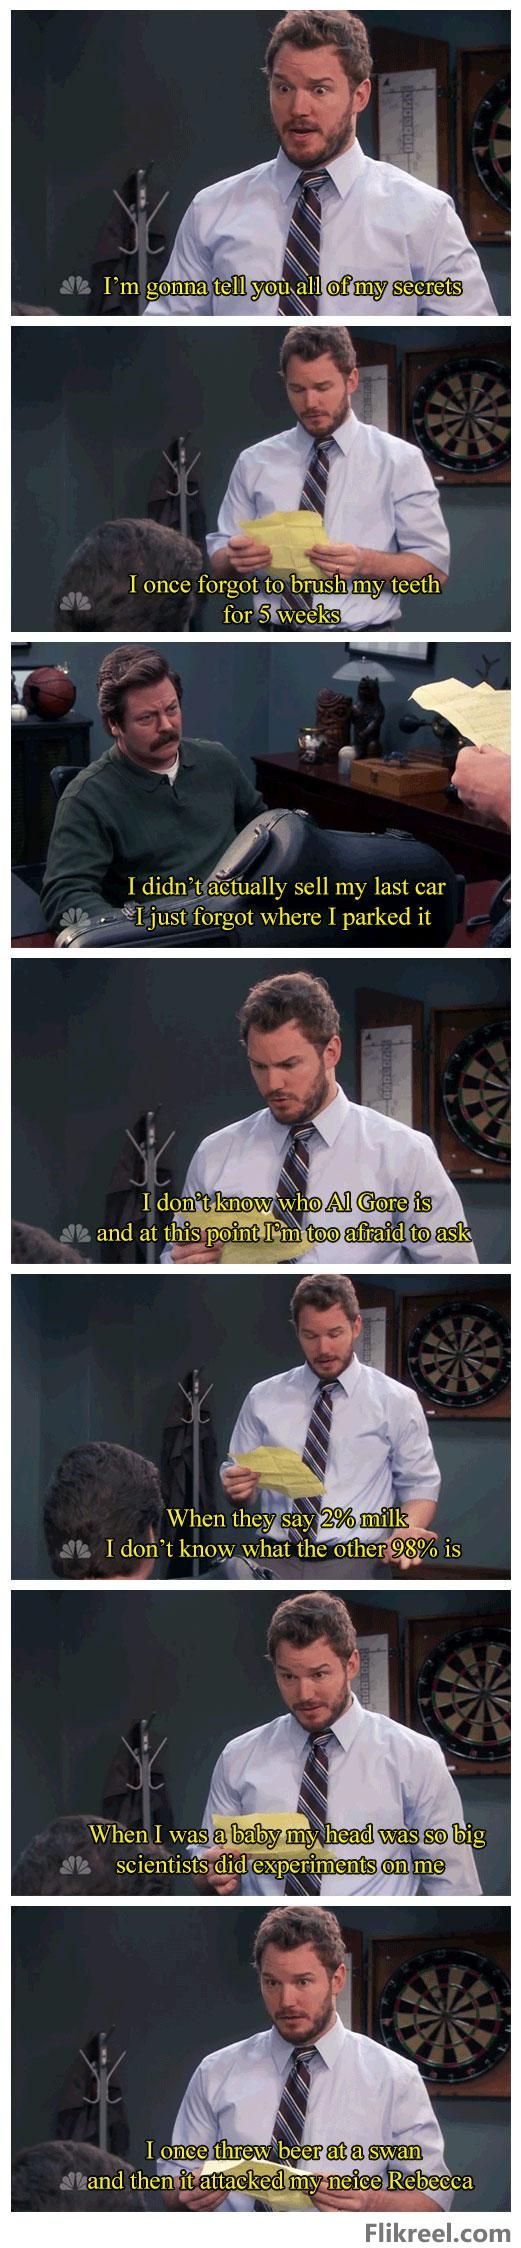 Andy's secrets ~ Parks and RecreationParks And Recreation, Funny Image, Andy Dwyer, Funny Pics, Funny Pictures, Funny Quotes, Andy Secret, Funny Photos, Andy'S Secret